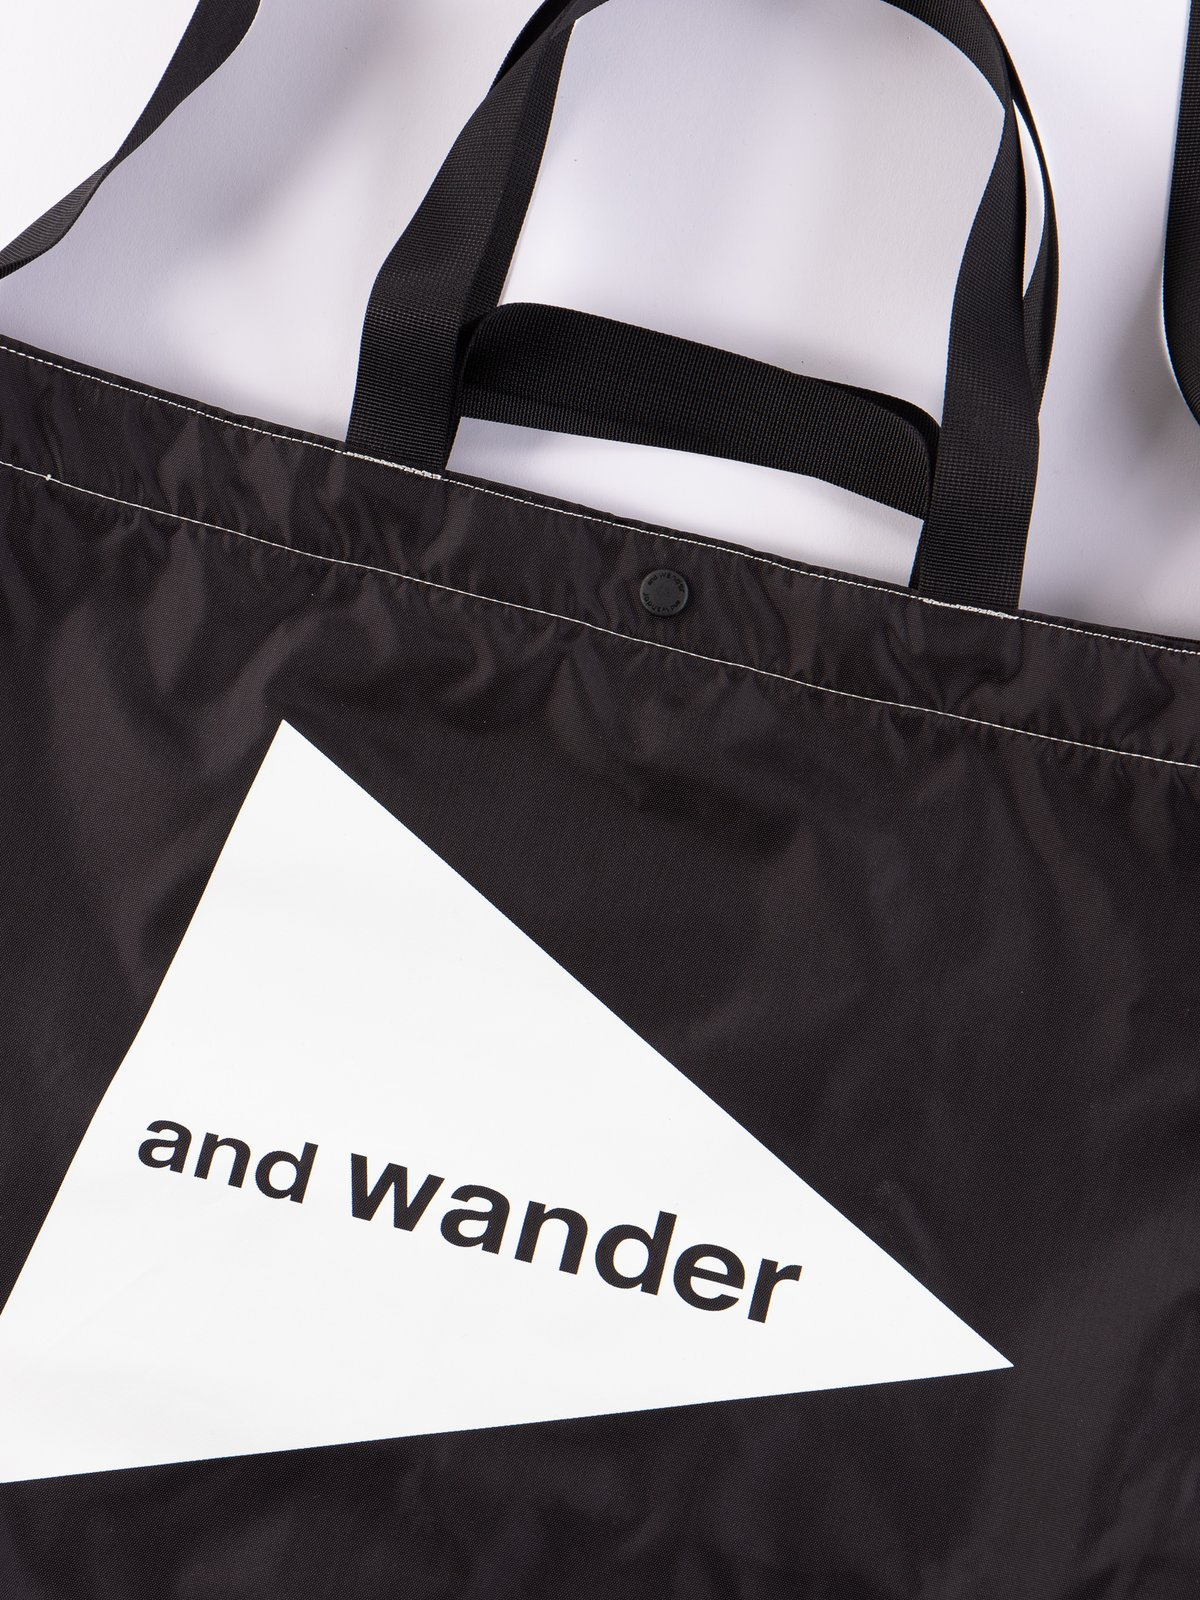 Black Large Logo Tote Bag - Image 2